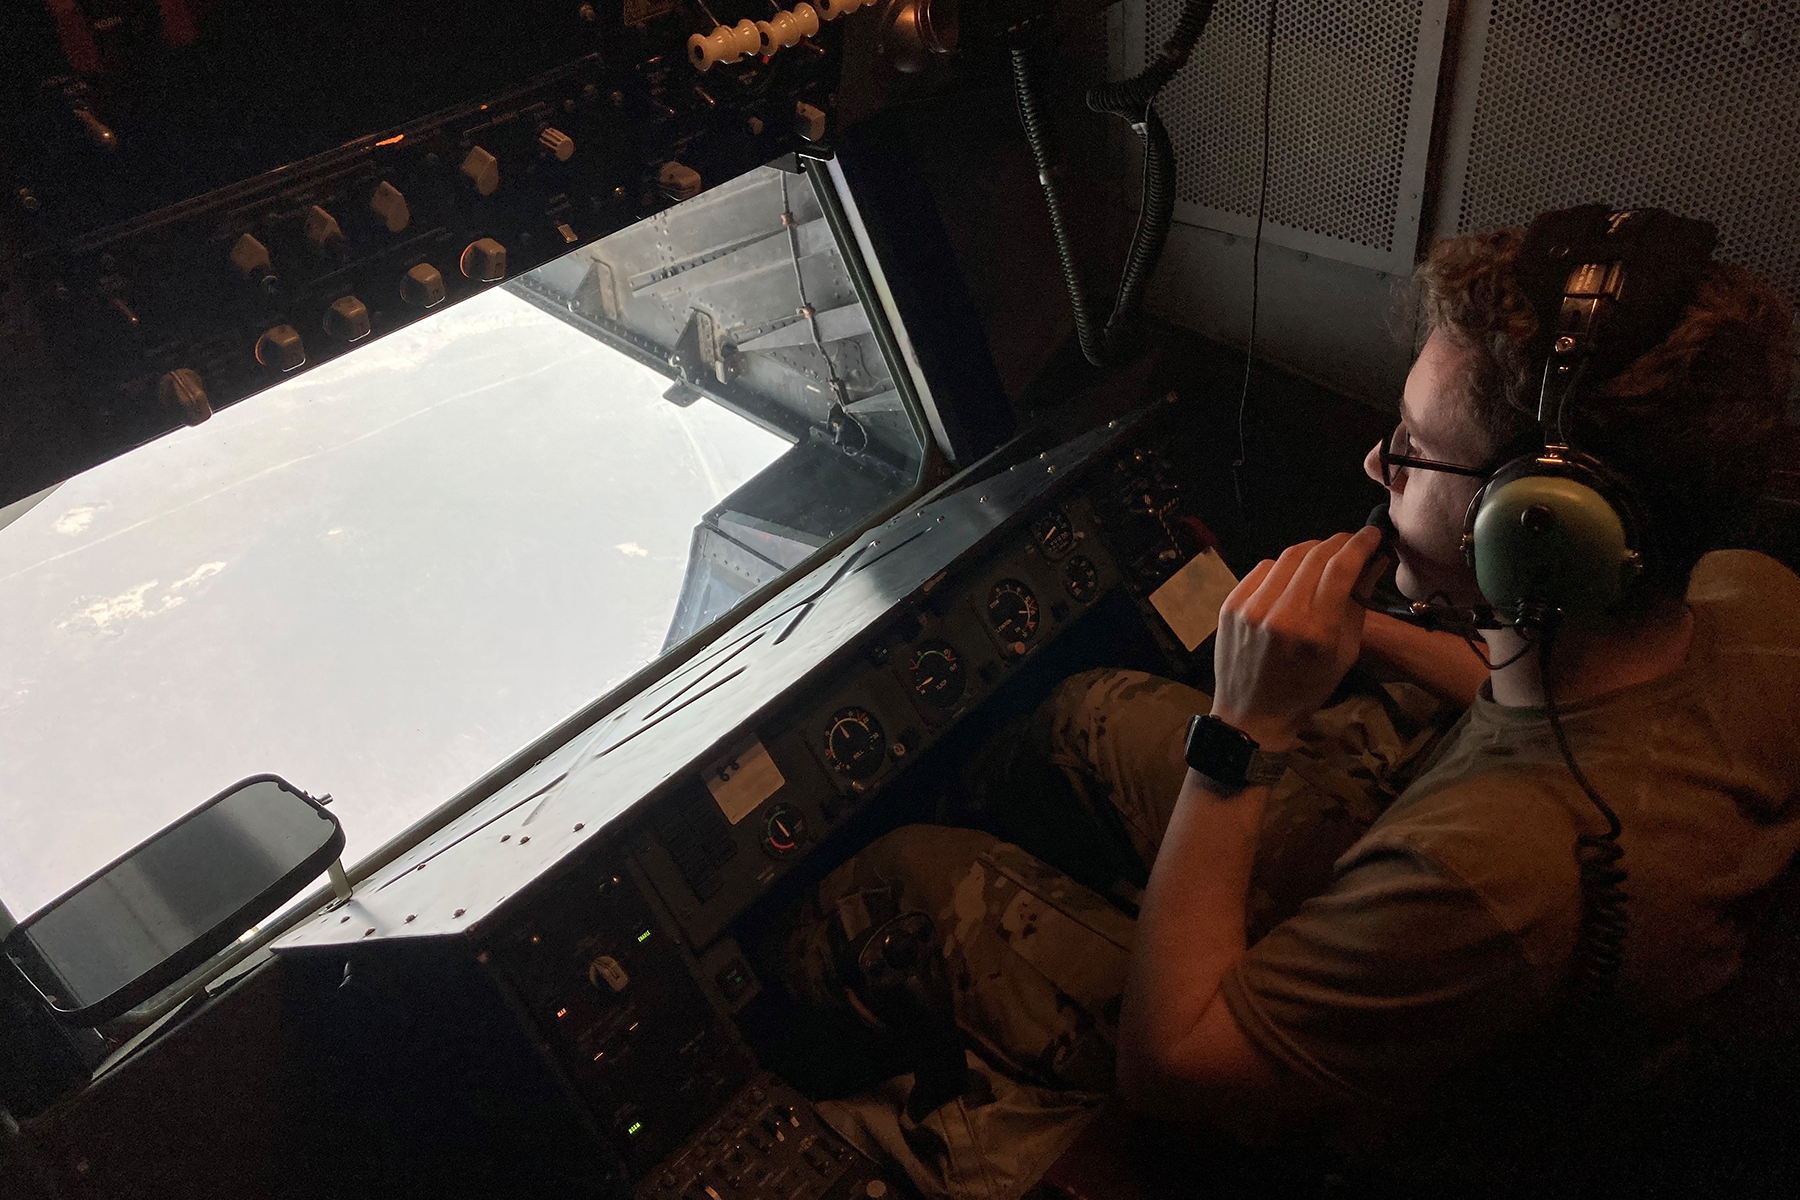 'Keep It Gucci:' The Precise Art of Being an Air Force In-Flight Refueler